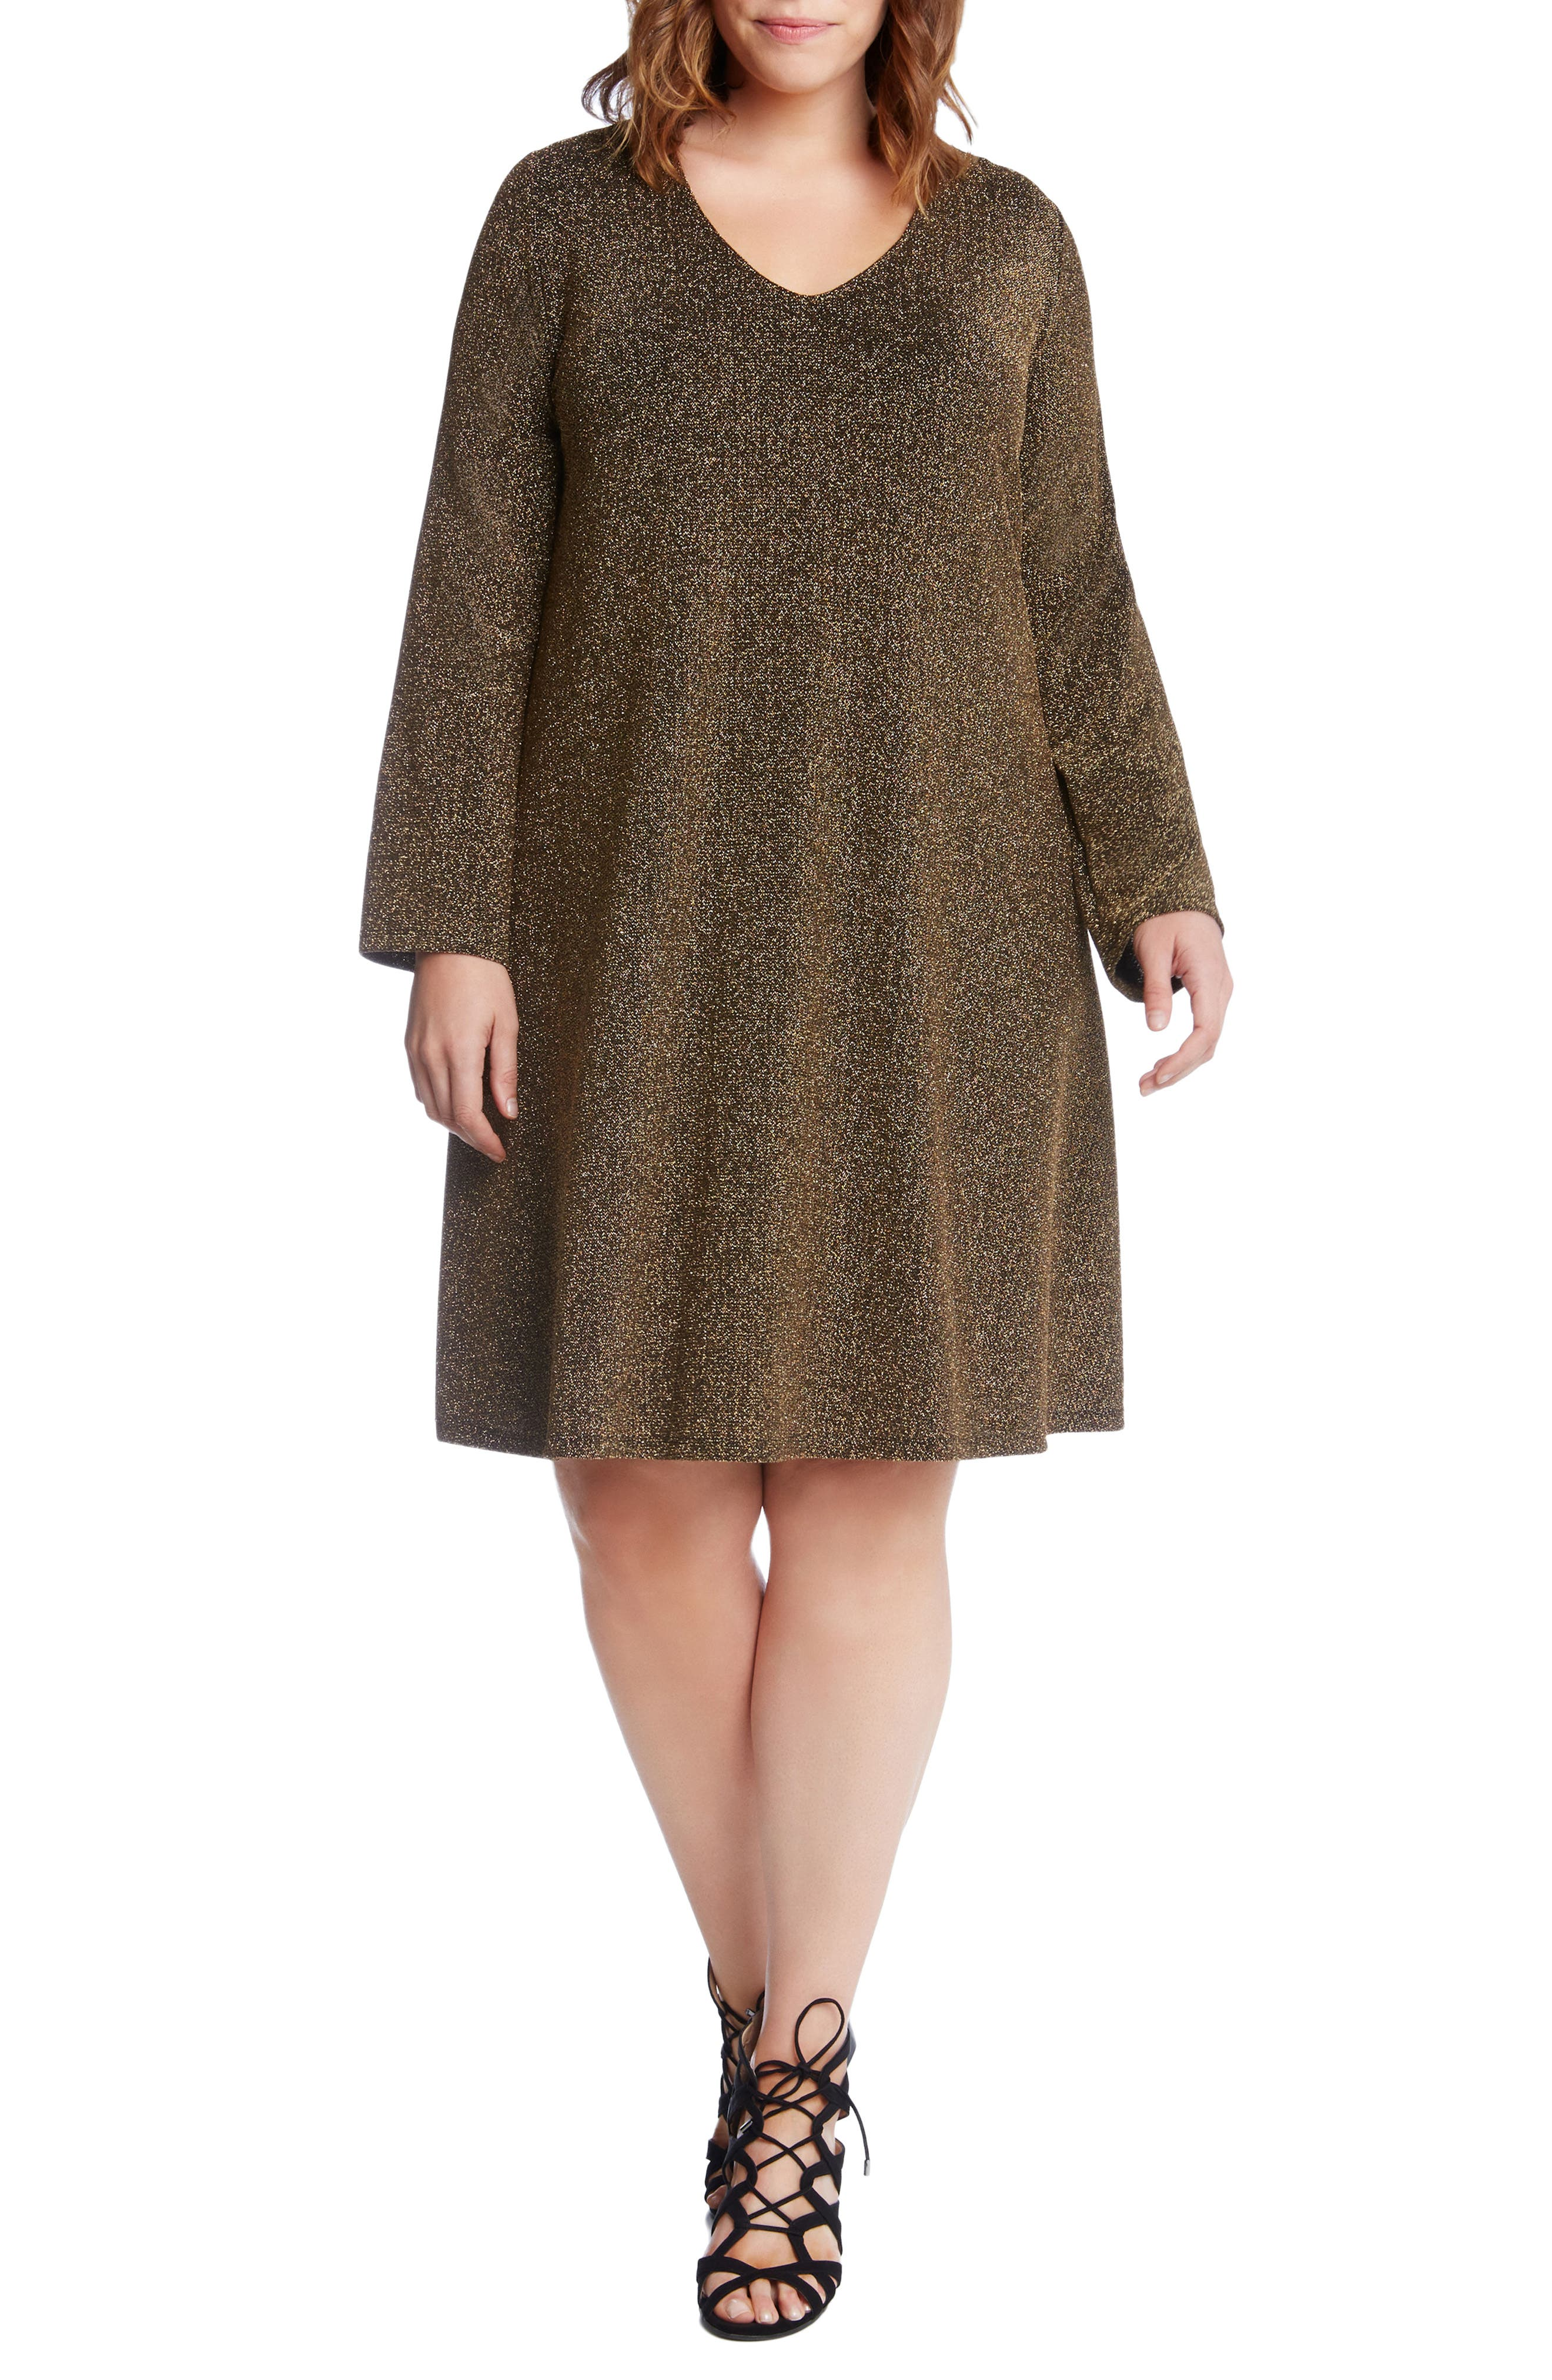 Taylor Gold Knit Dress,                         Main,                         color, 710